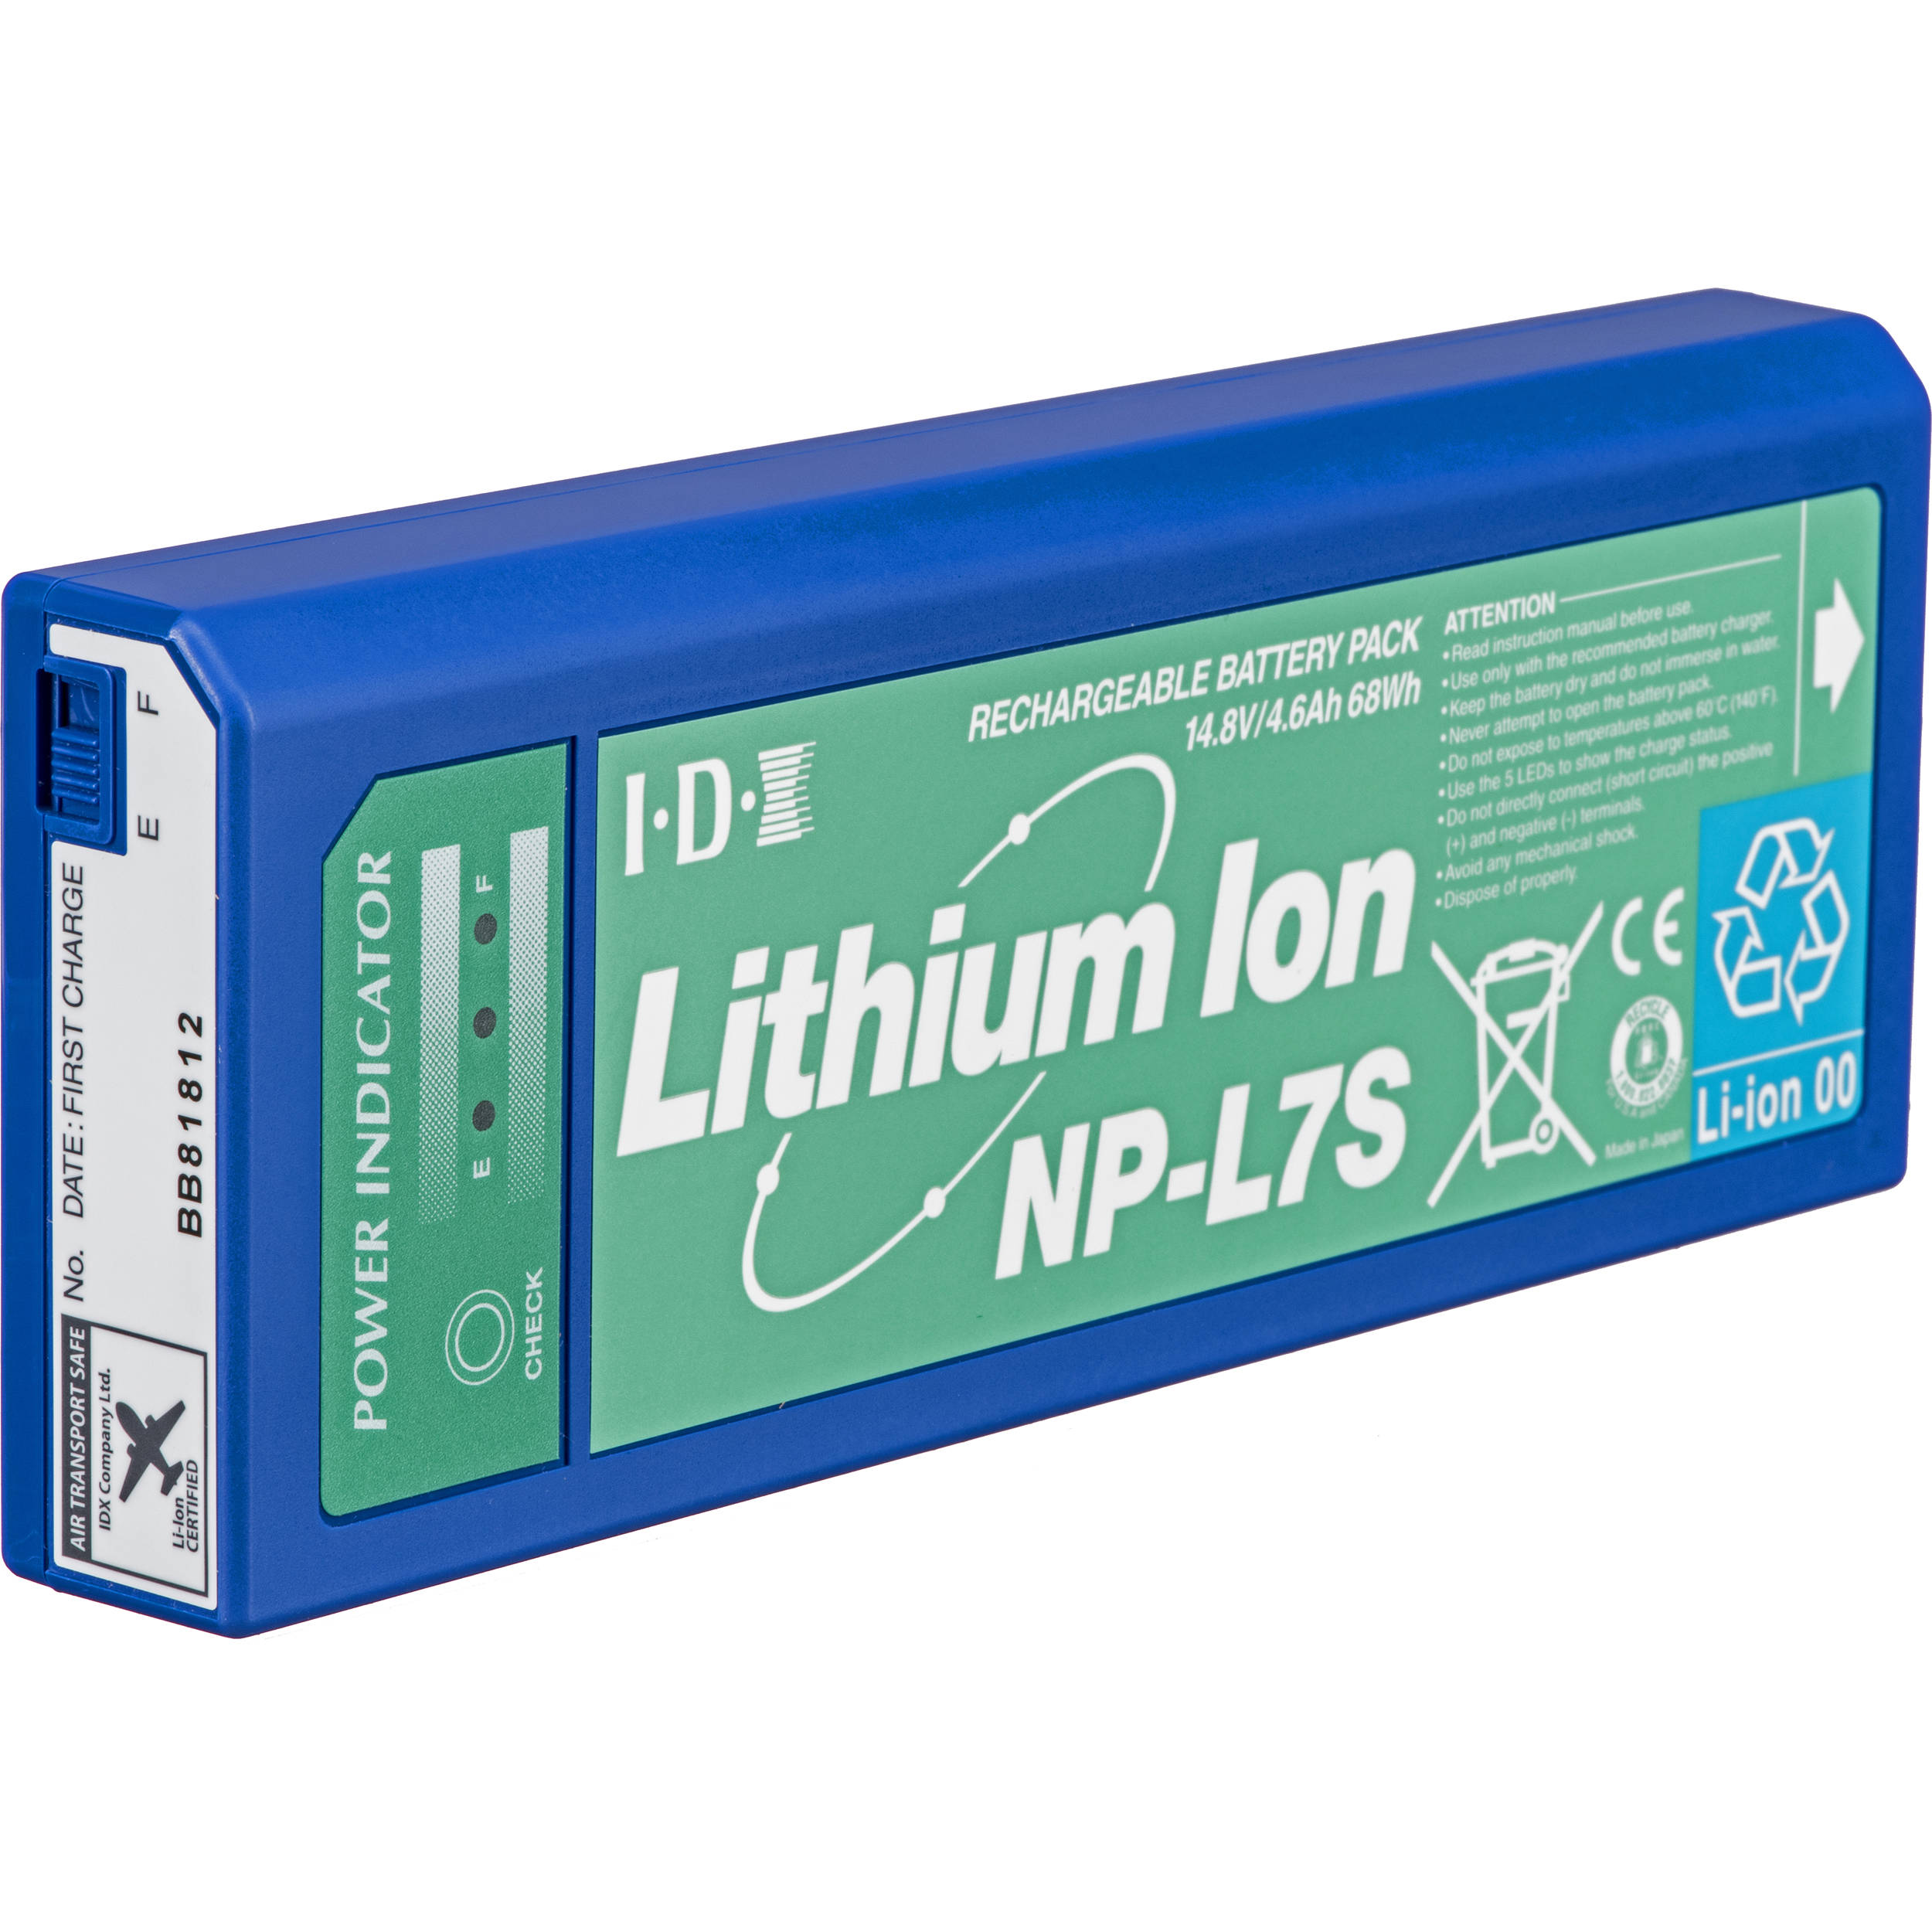 Lithium Ion Battery >> Idx System Technology Np L7s Np Style Lithium Ion Battery Np L7s